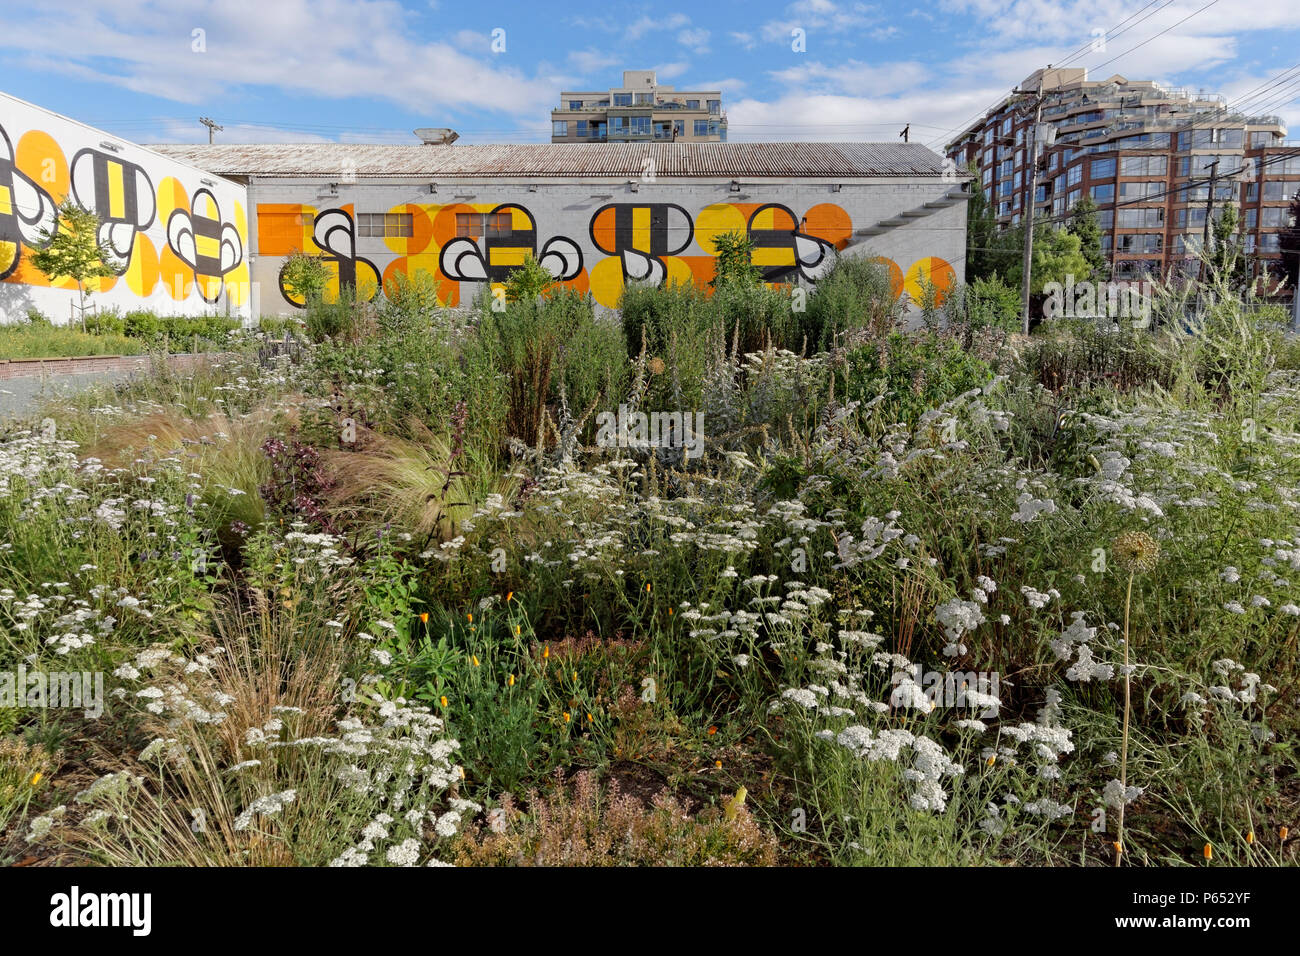 Fifth and Pine pop-up park and pollinator project with wildflower meadow bee habitat, Vancouver, BC, Canada - Stock Image